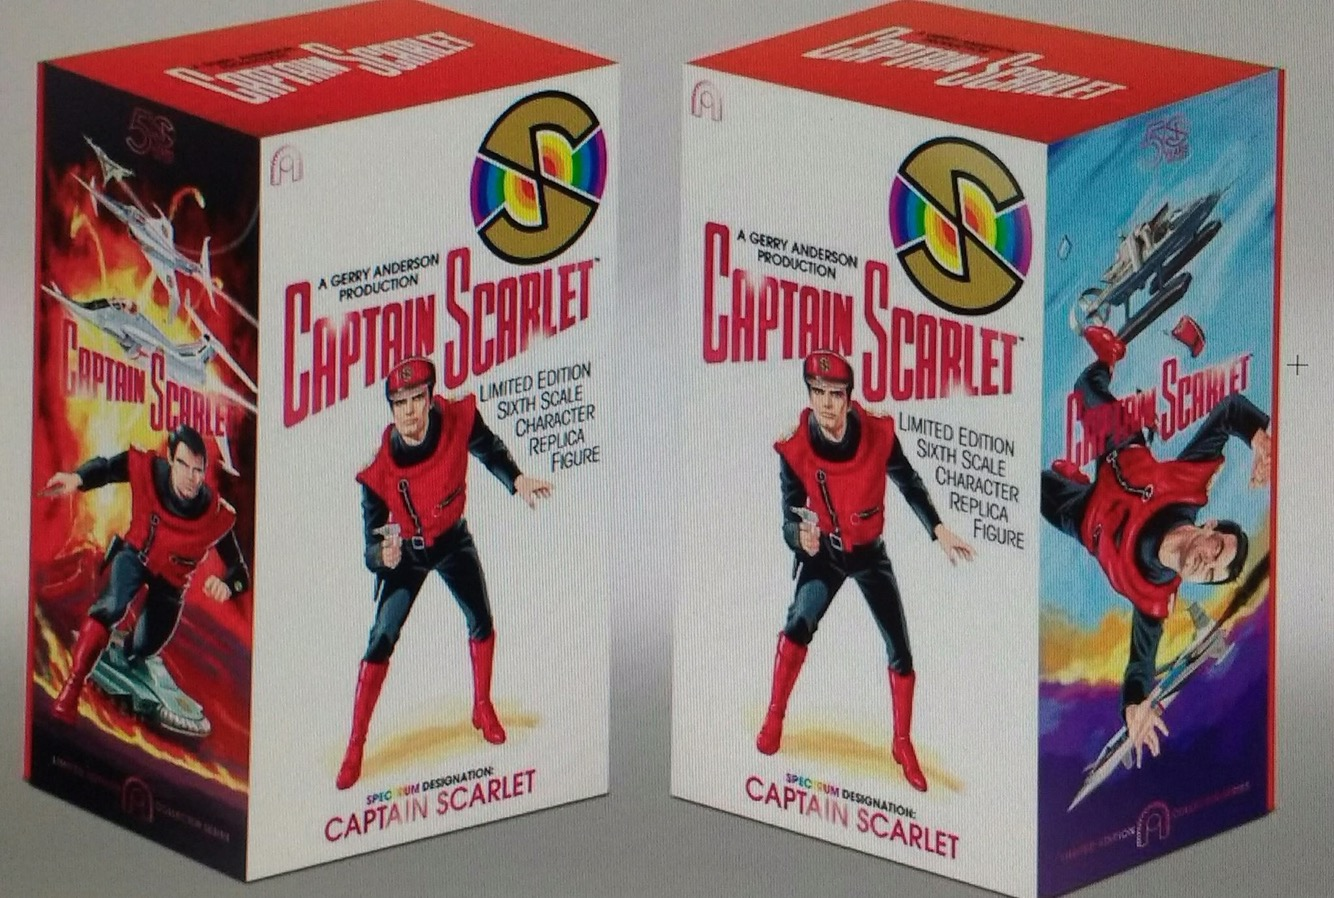 BIG Chief Studios Captain Scarlet art in progress work by Lee Sullivan